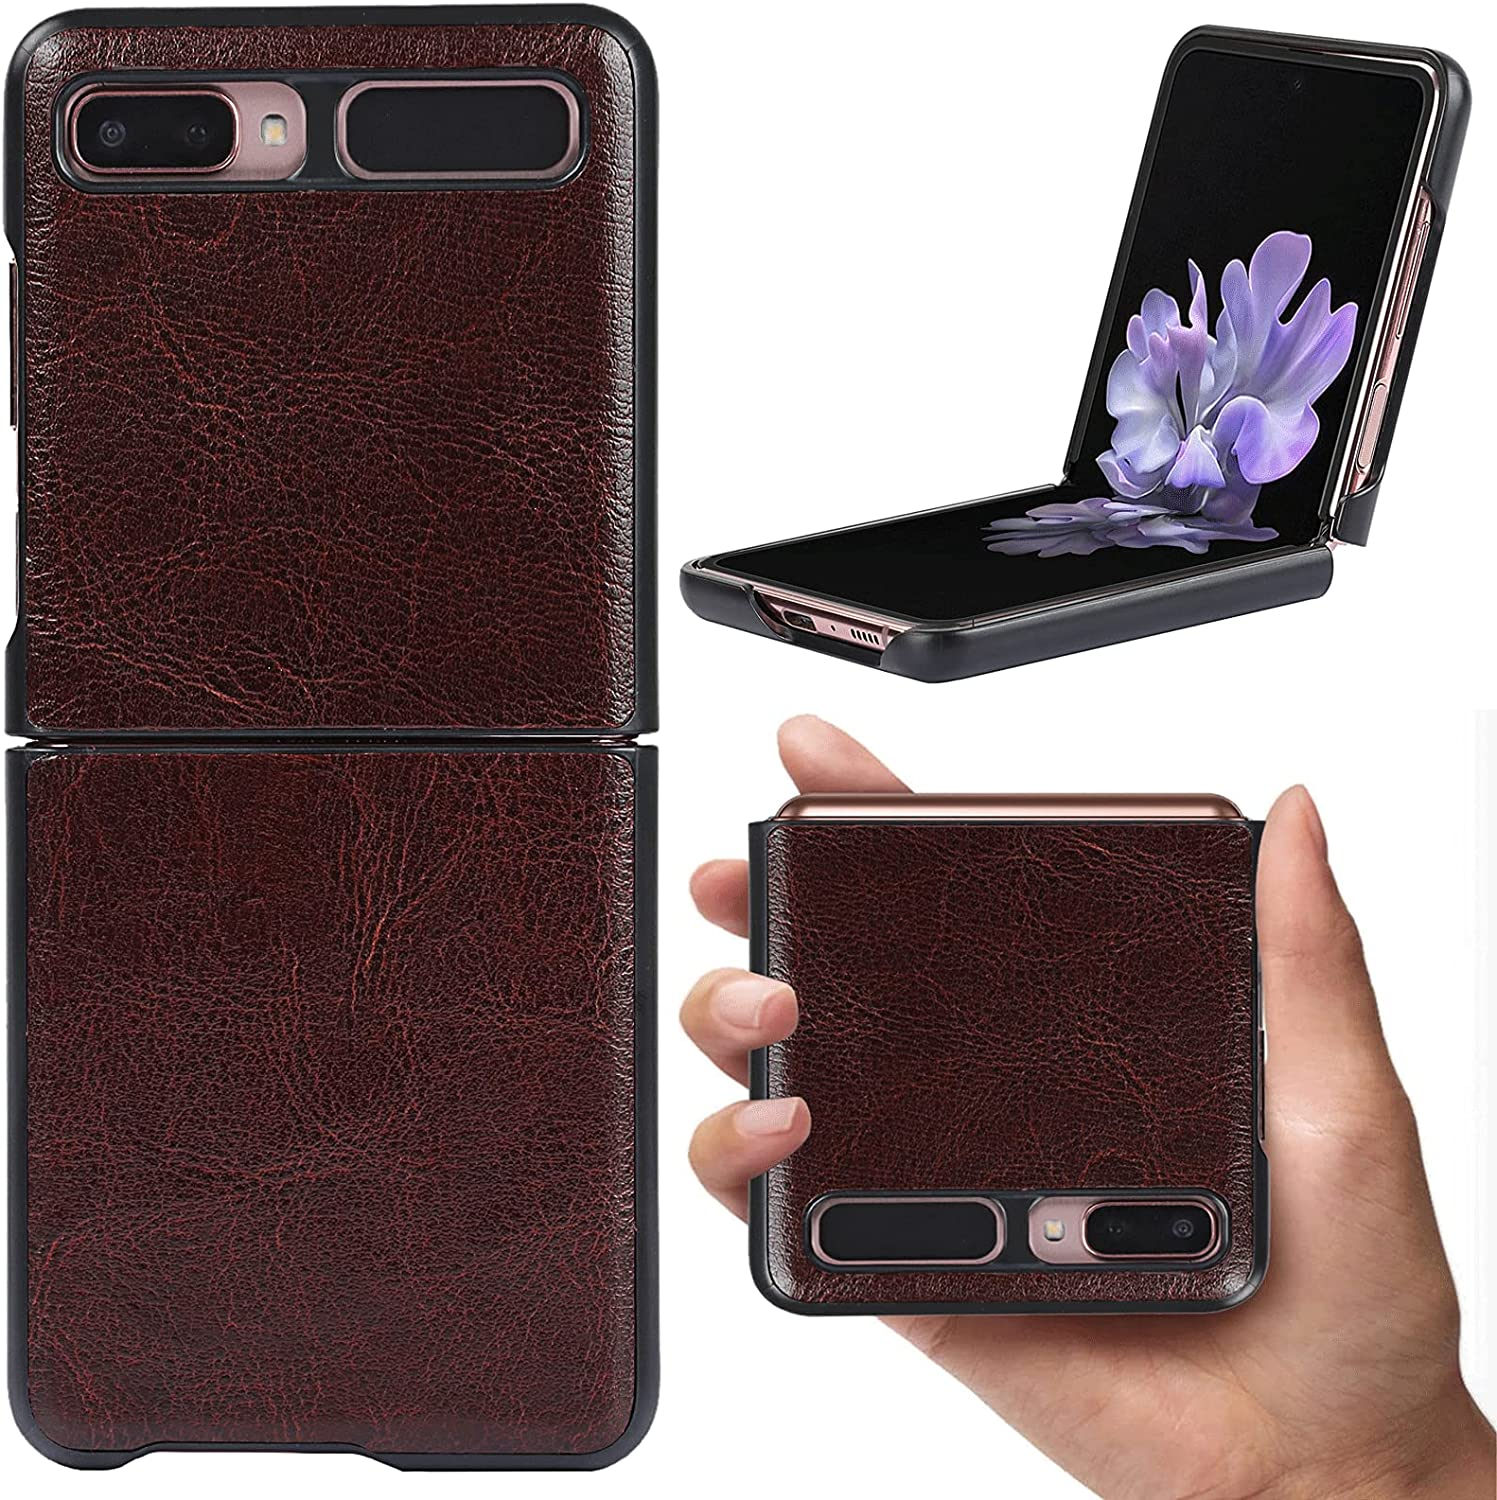 Frolan Case for Samsung Galaxy Z Flip 5G, Genuine Leather Case Luxurious Premium Cow Leather Drop Protection Shockproof Cover Compatible Samsung Galaxy Z Flip 5G (Dark Brown)